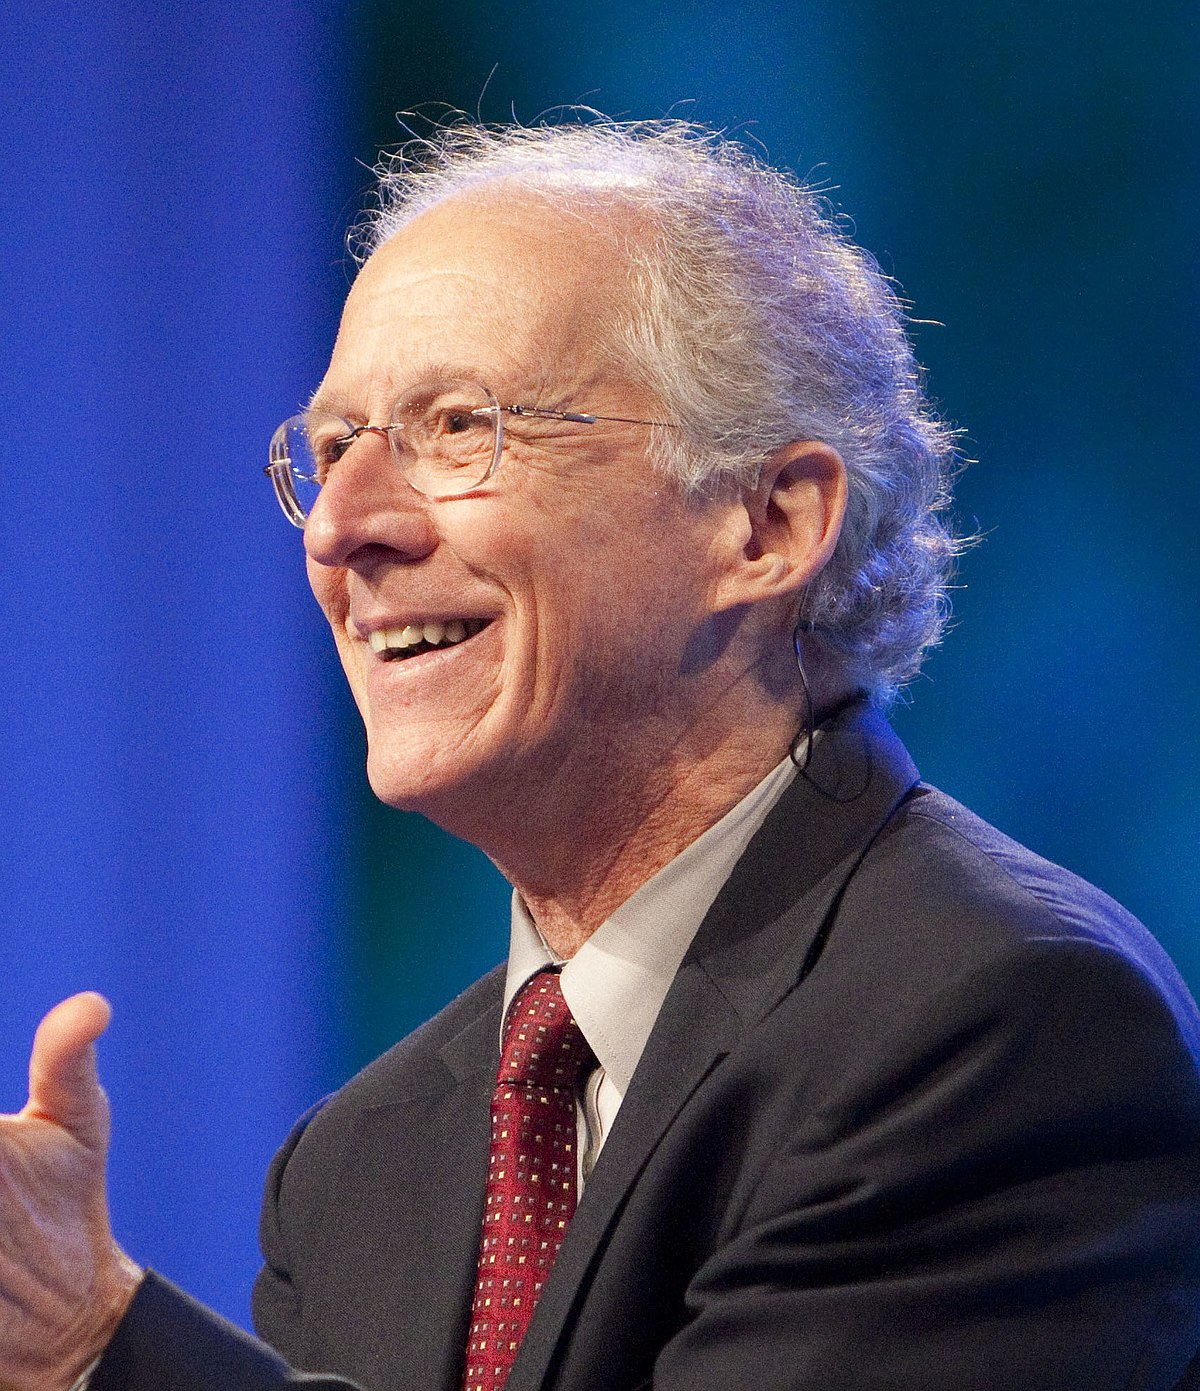 1200px-Photo_of_John_Piper,_Oct_2010_(cropped).jpg